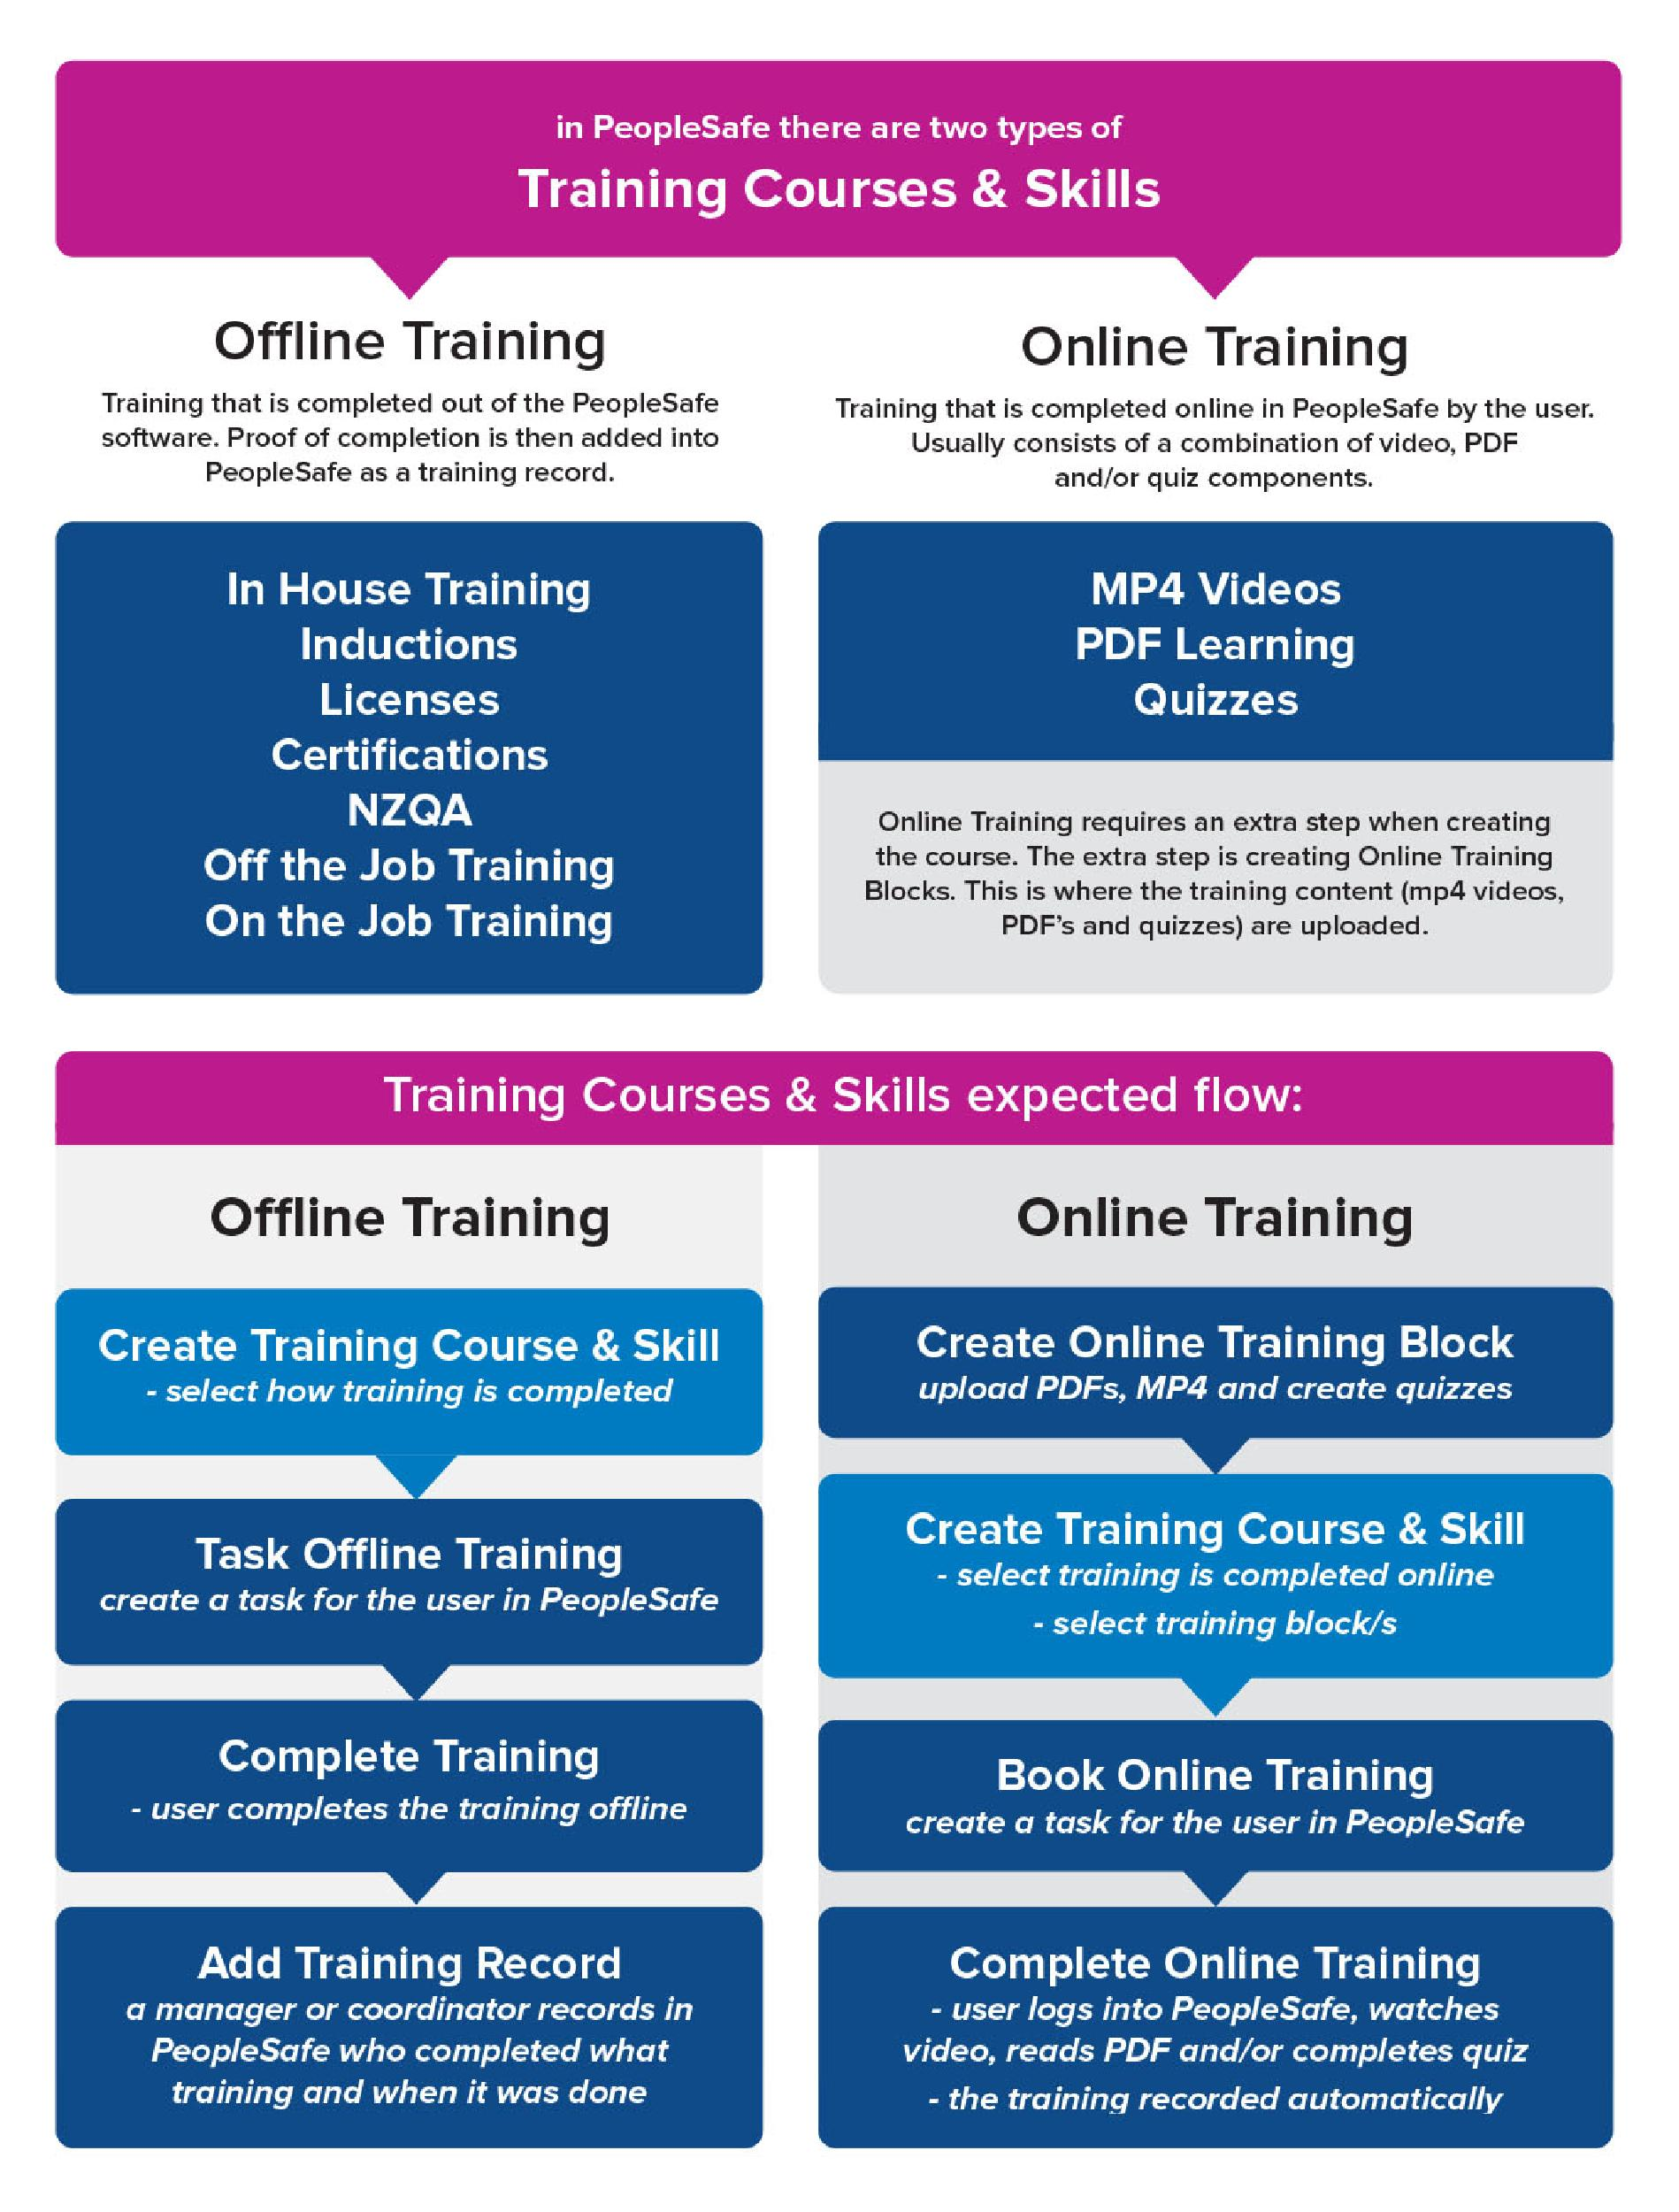 an overview of training skills peoplesafe help centre training courses skills exist in peoplesafe as a list in the settings section users peoplesafe coordinator security clearance can add to the list of